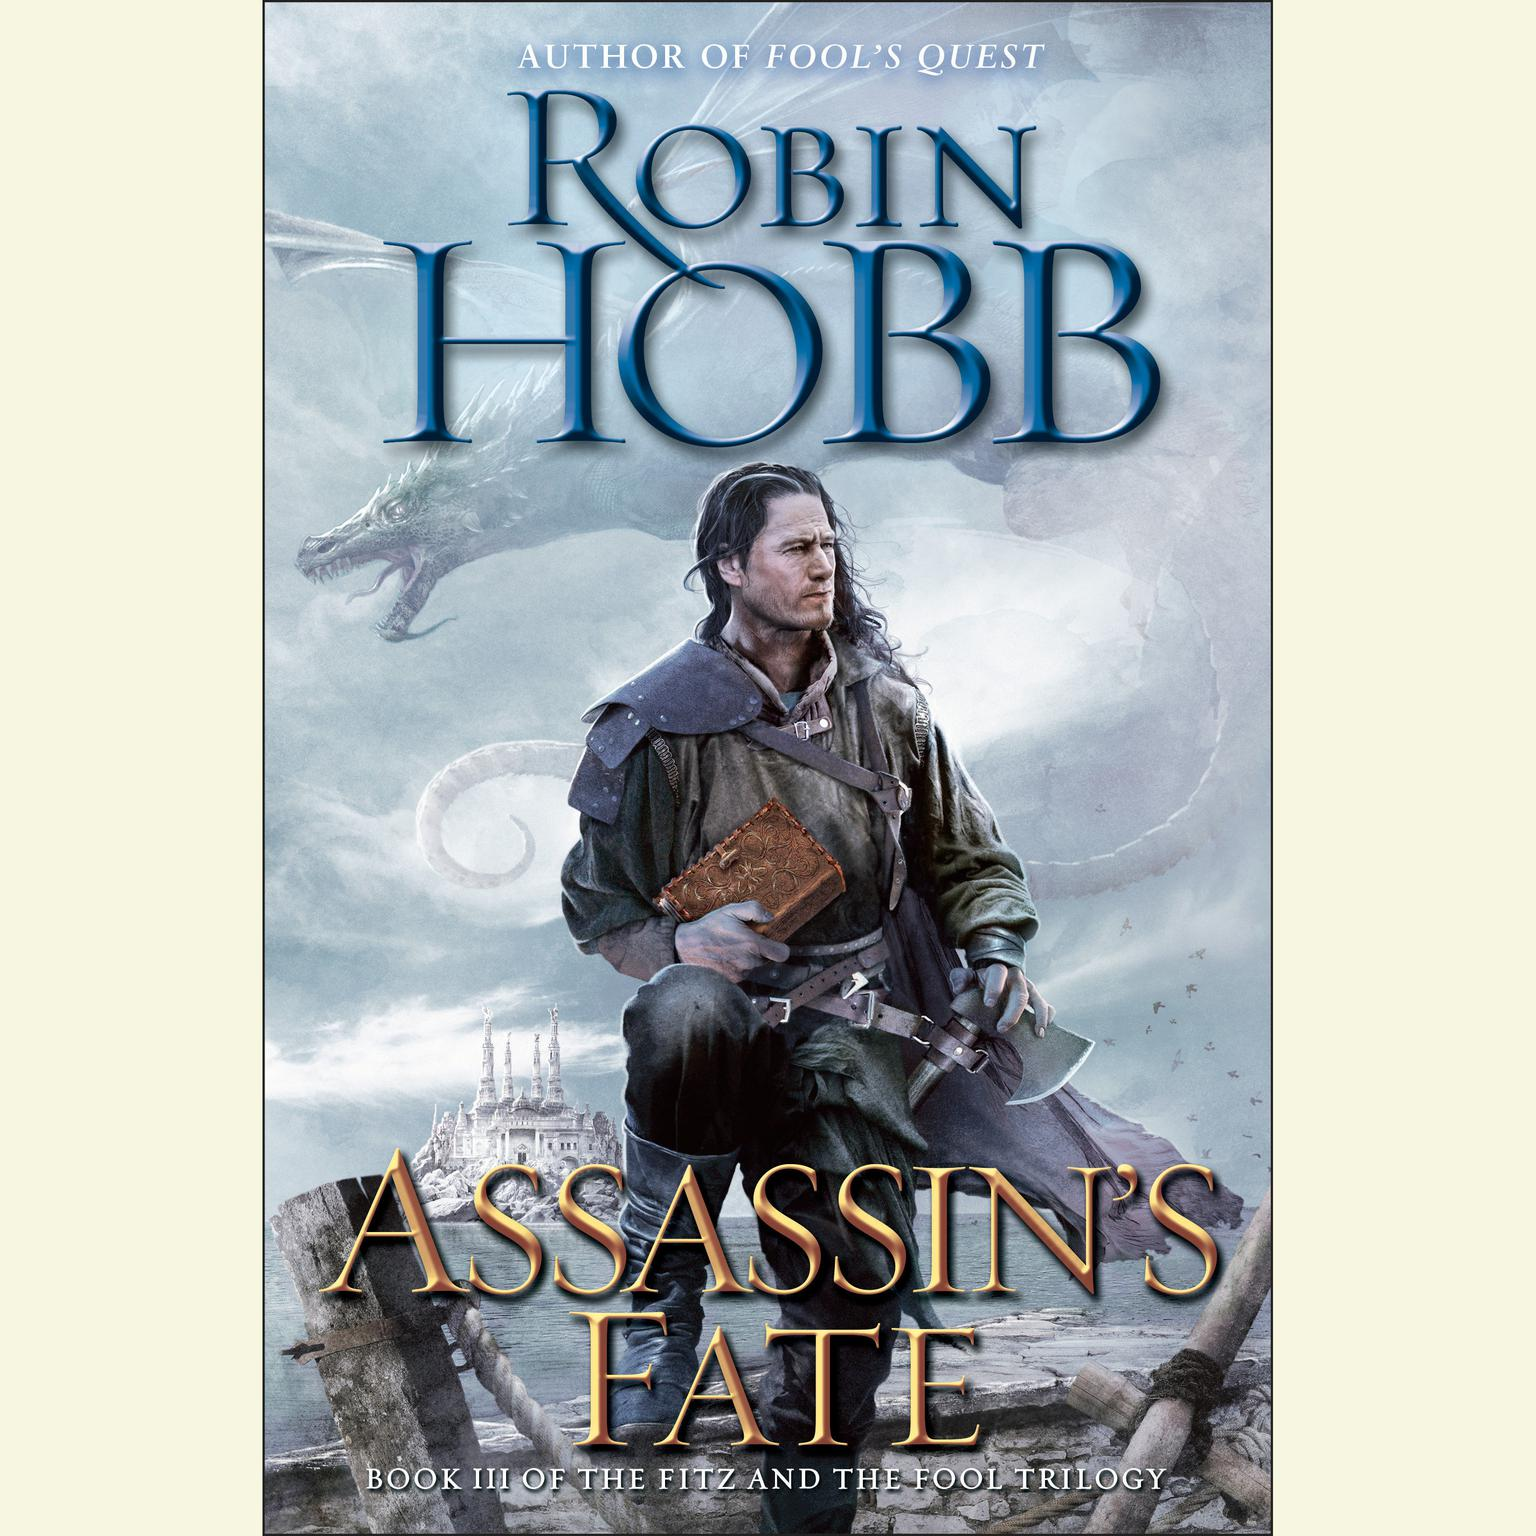 Printable Assassin's Fate: Book III of the Fitz and the Fool trilogy Audiobook Cover Art